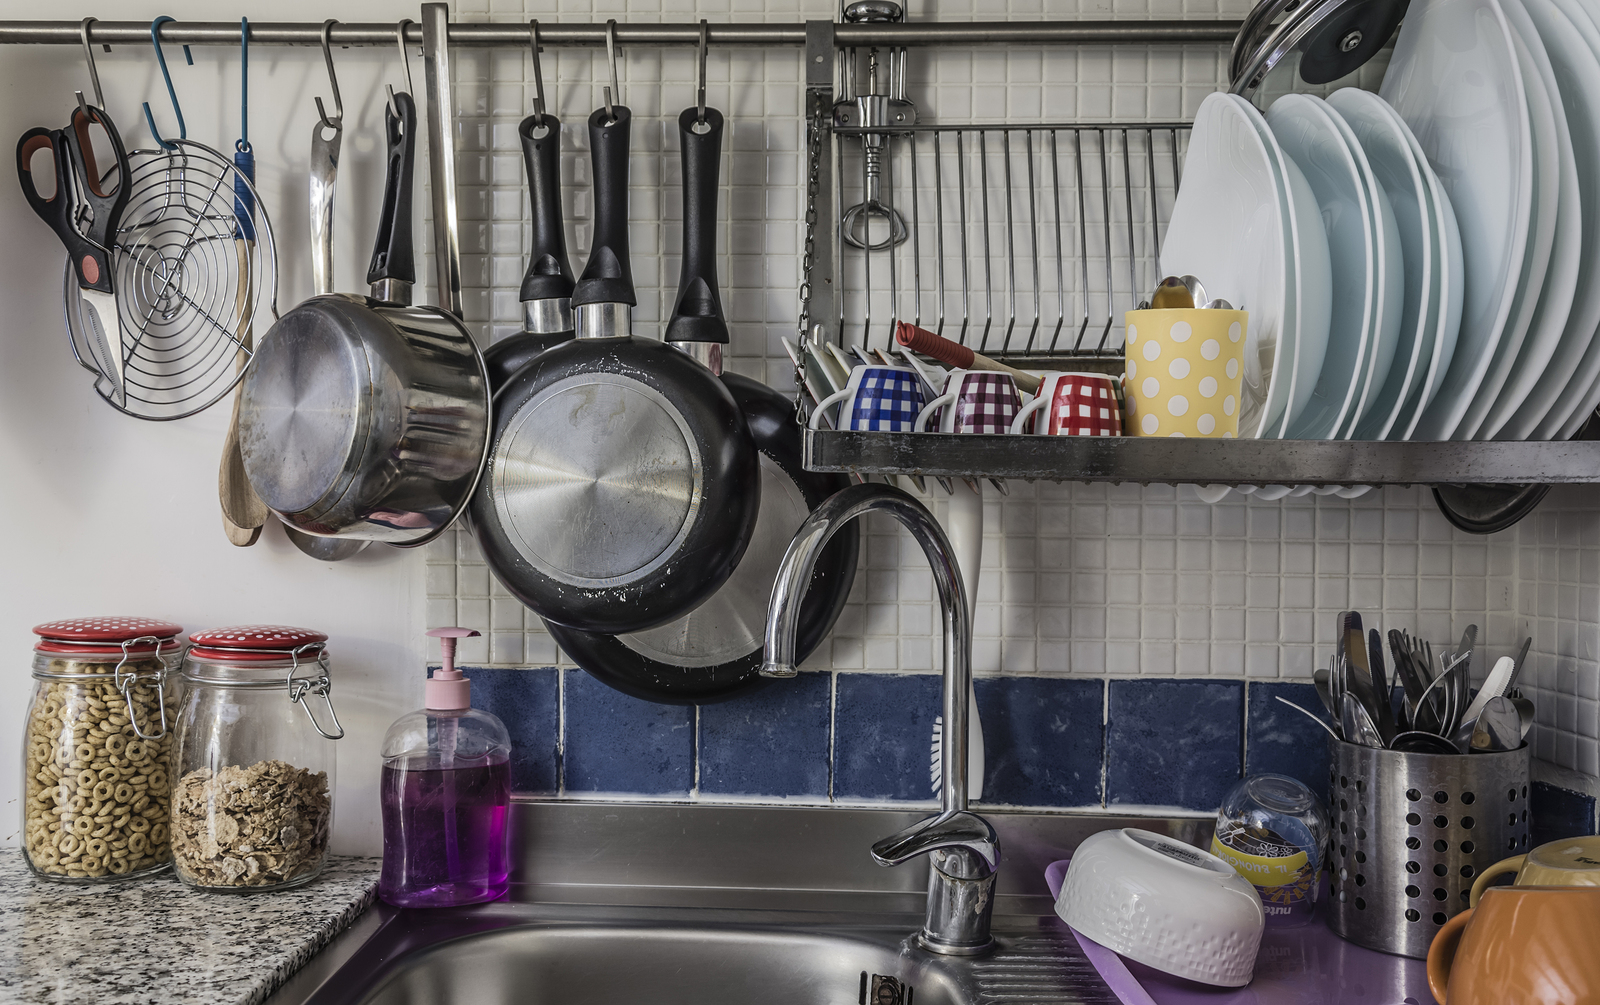 Plates and cups left to dry on a iron dish rack